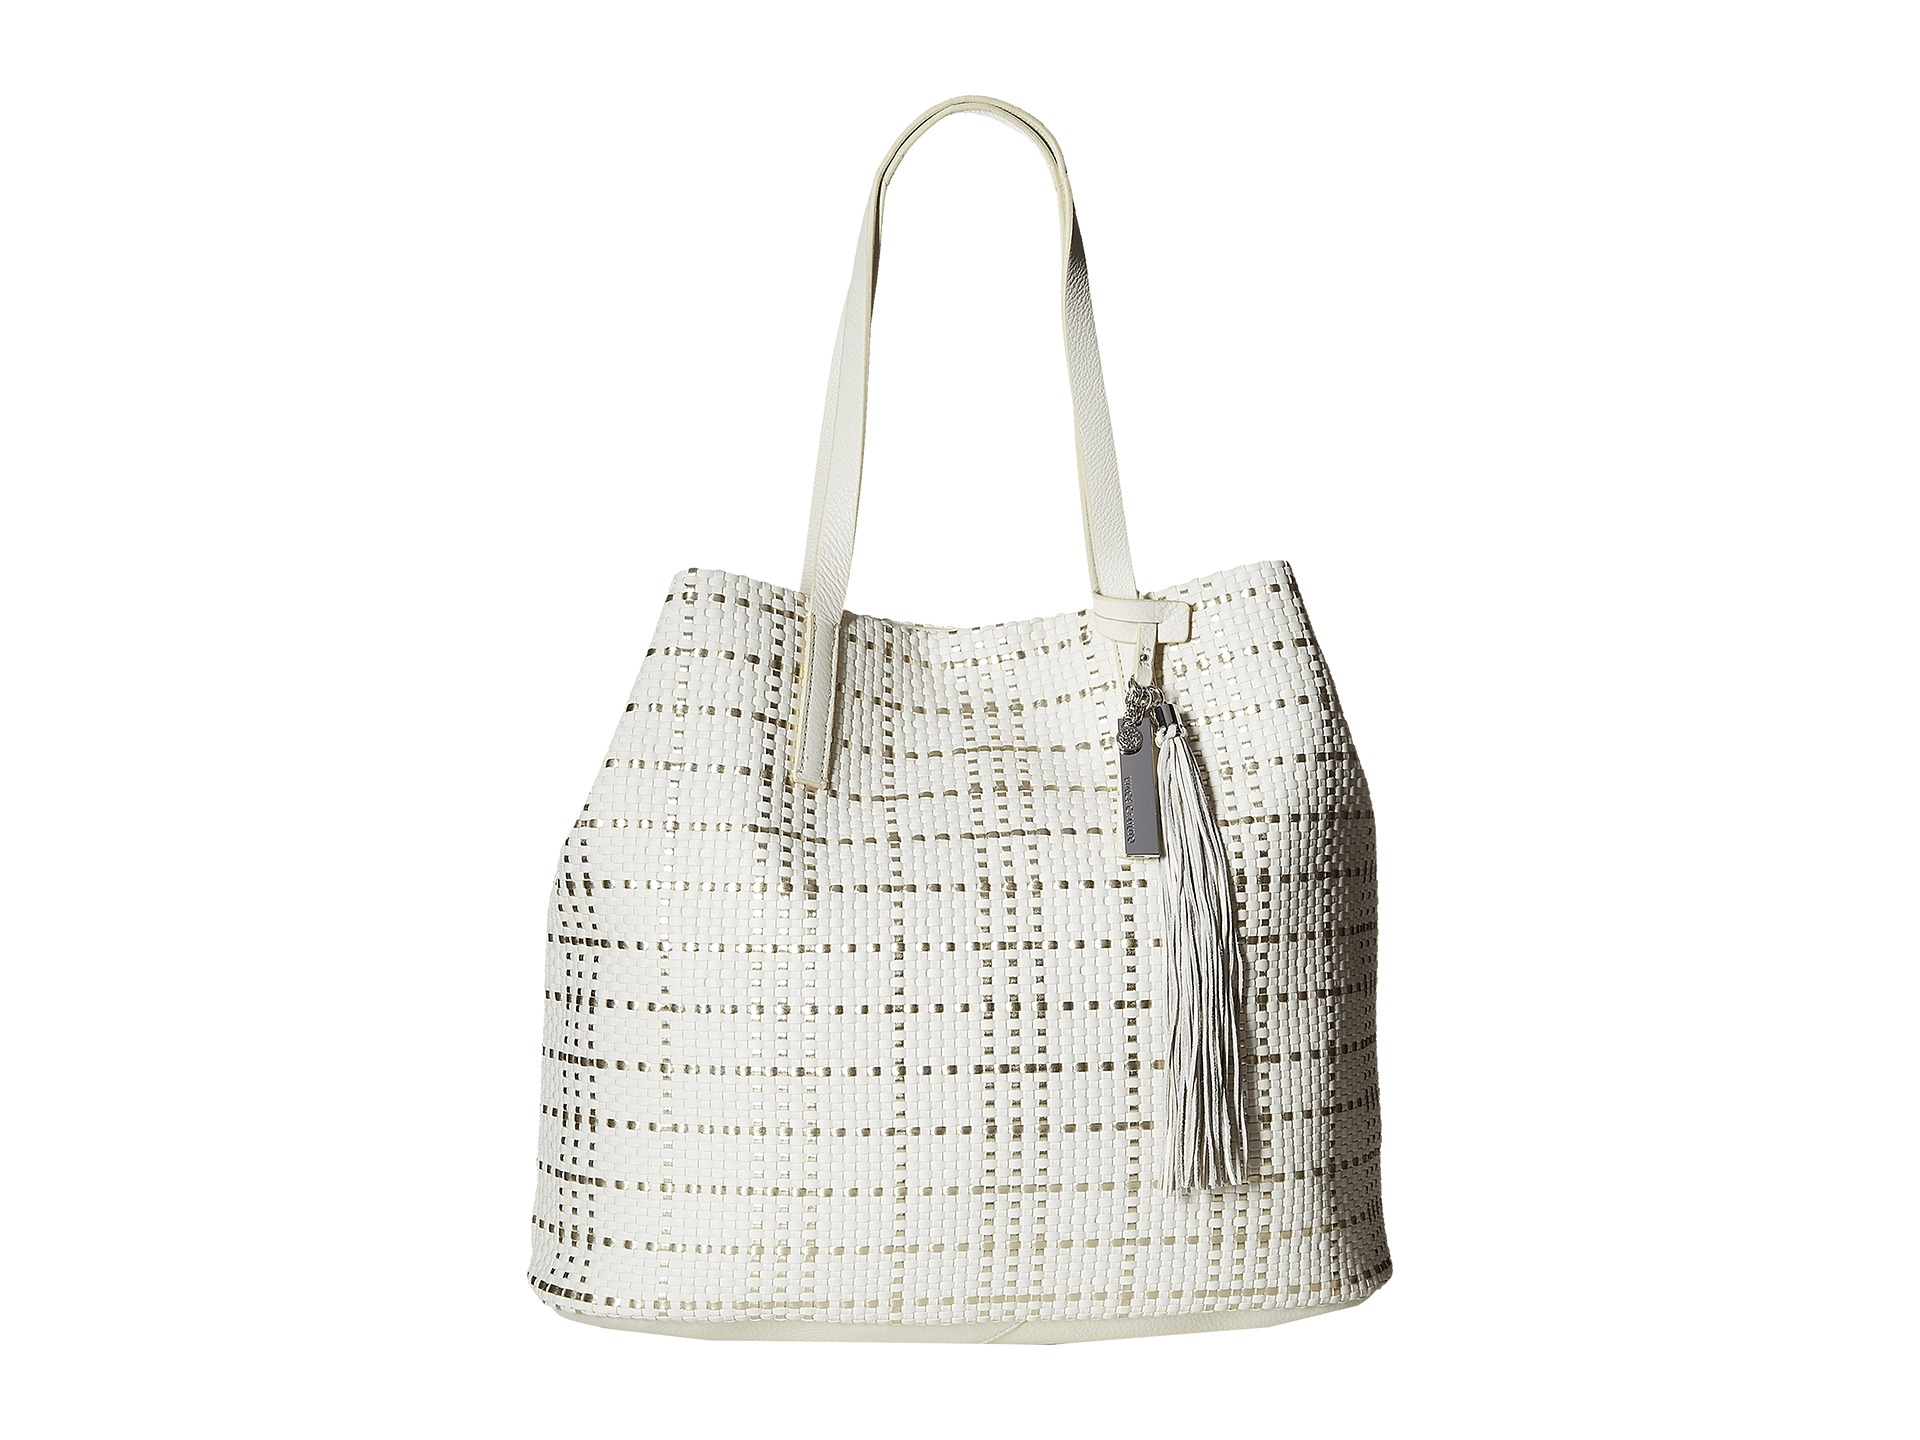 0891a57db9b1 Lyst - Vince Camuto Oren Tote in White